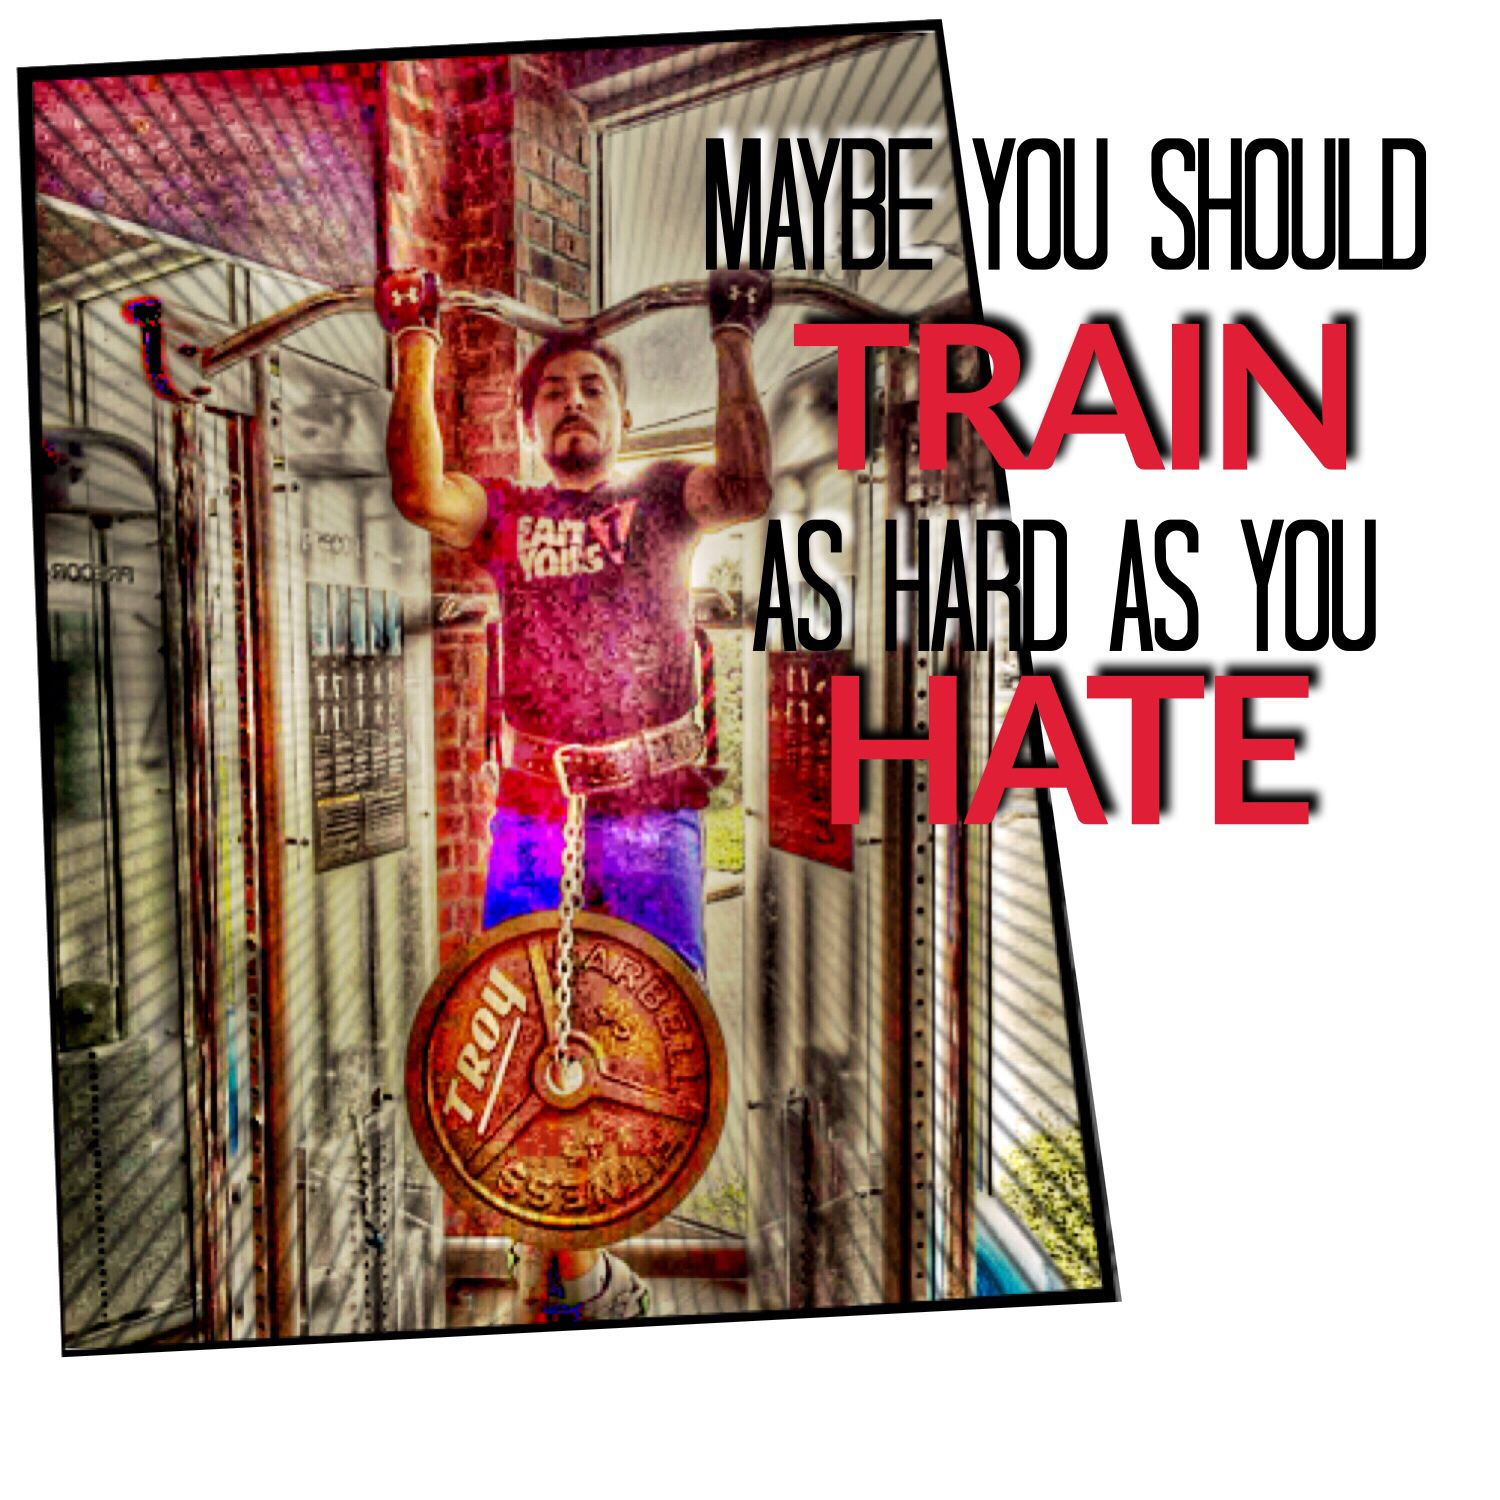 Train Insane With Images